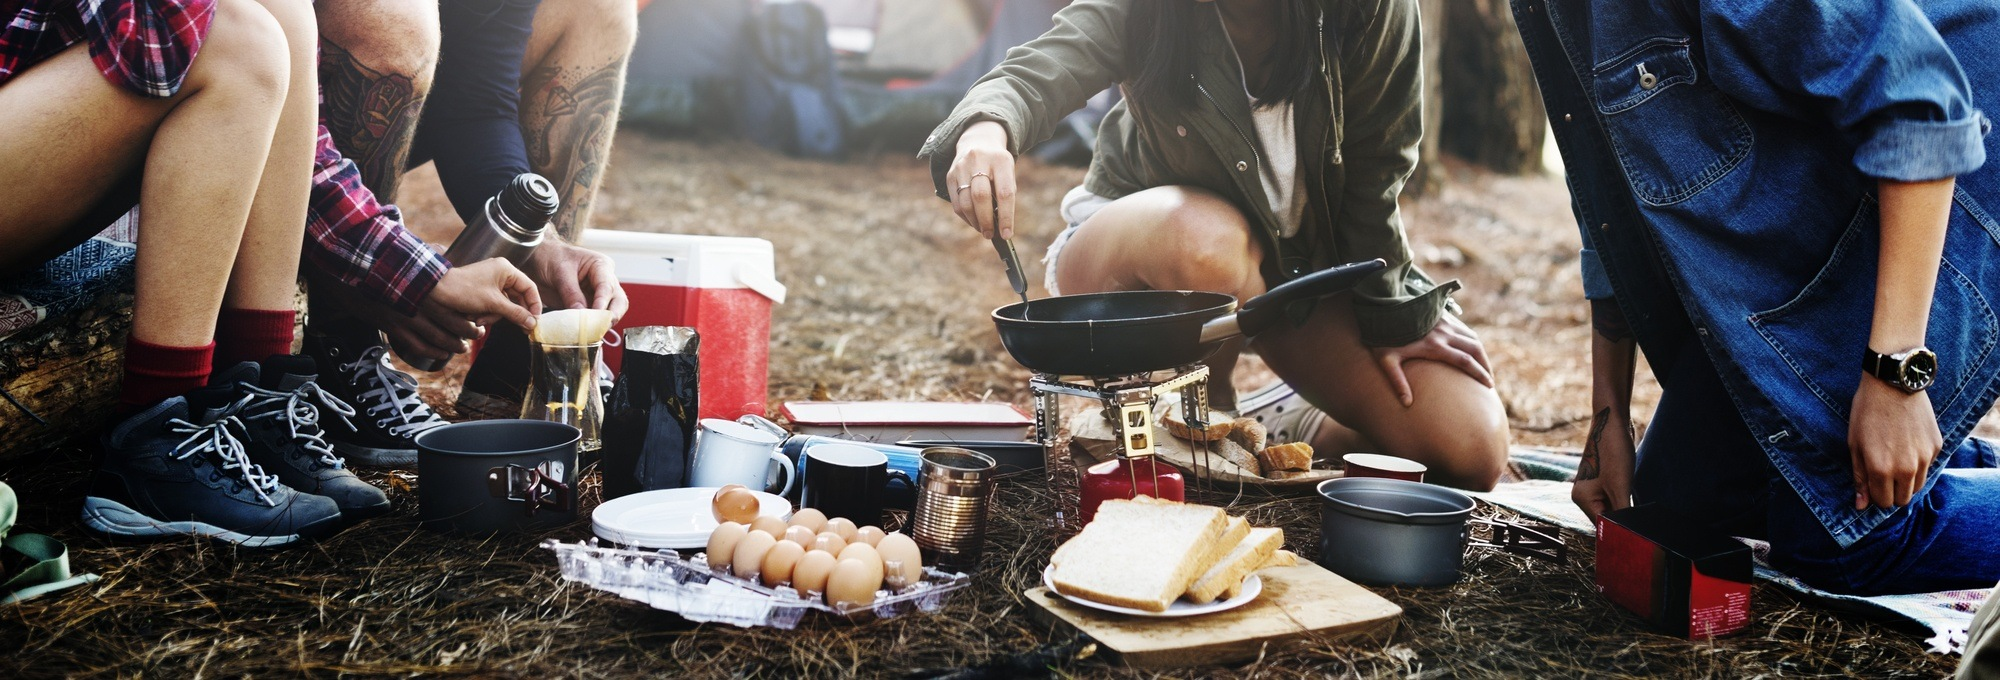 Clever cooking hacks for your next camping trip